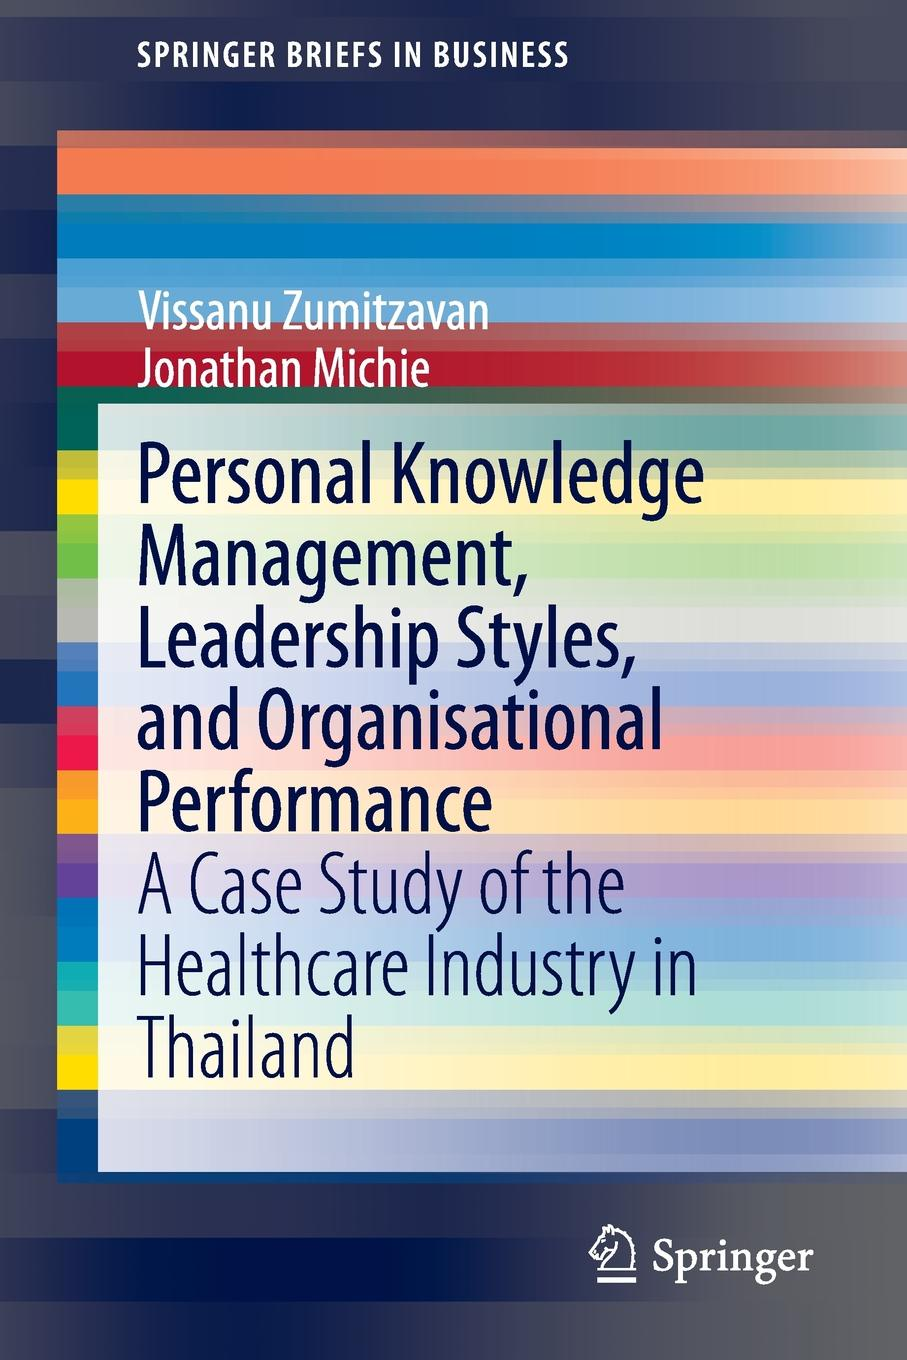 Vissanu Zumitzavan, Jonathan Michie Personal Knowledge Management, Leadership Styles, and Organisational Performance. A Case Study of the Healthcare Industry in Thailand